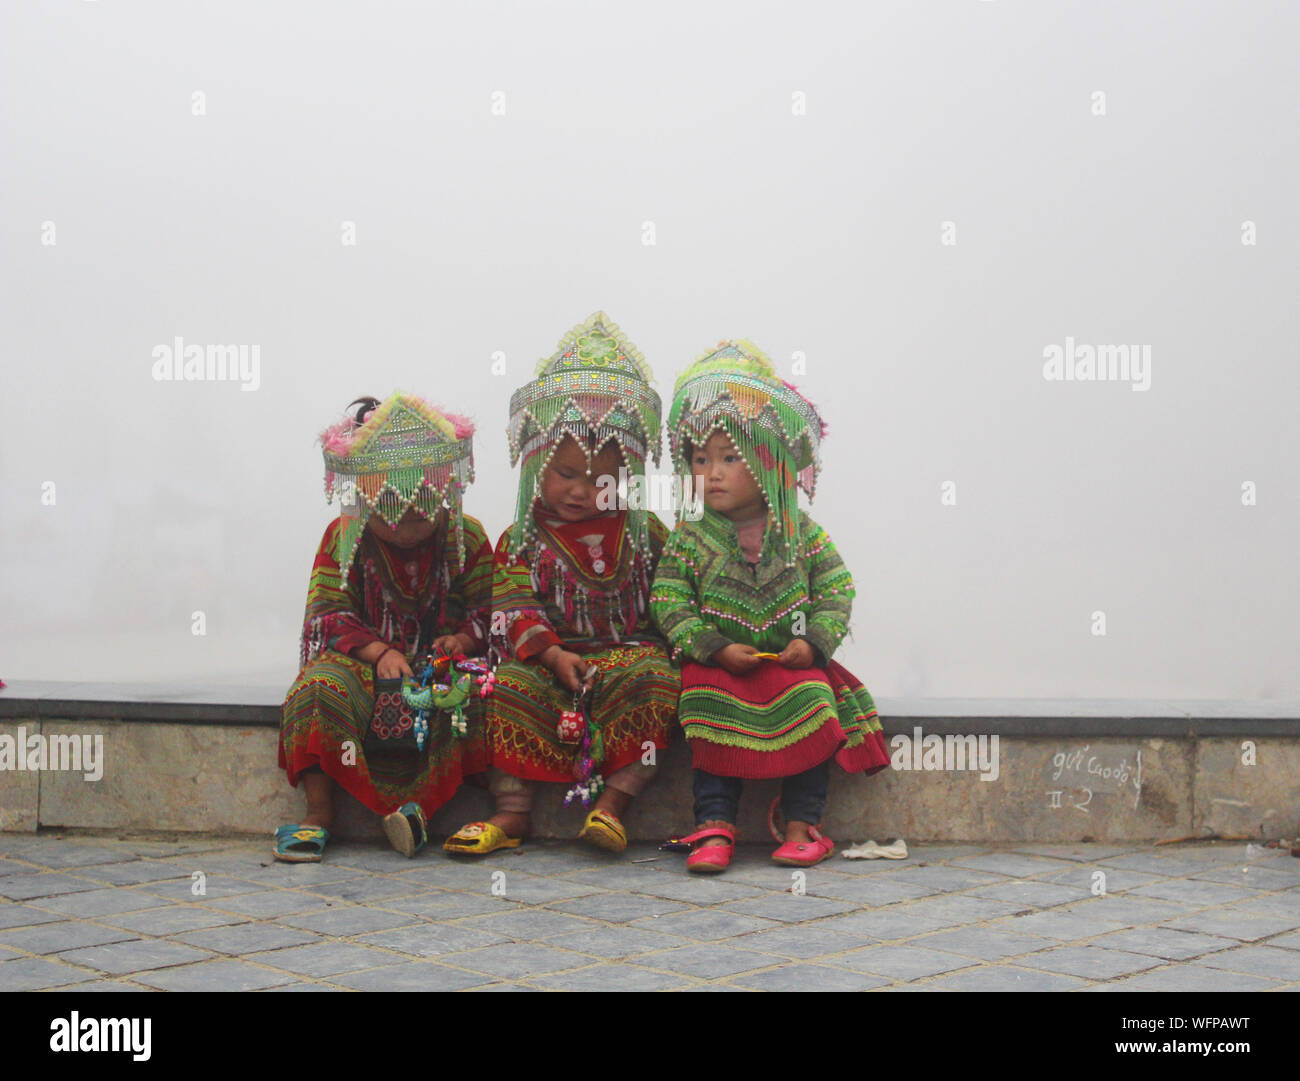 Sapa, Vietnam - june 4 2019 - small girls in traditional hmong clothes sitting on the edge on a very misty evening Stock Photo